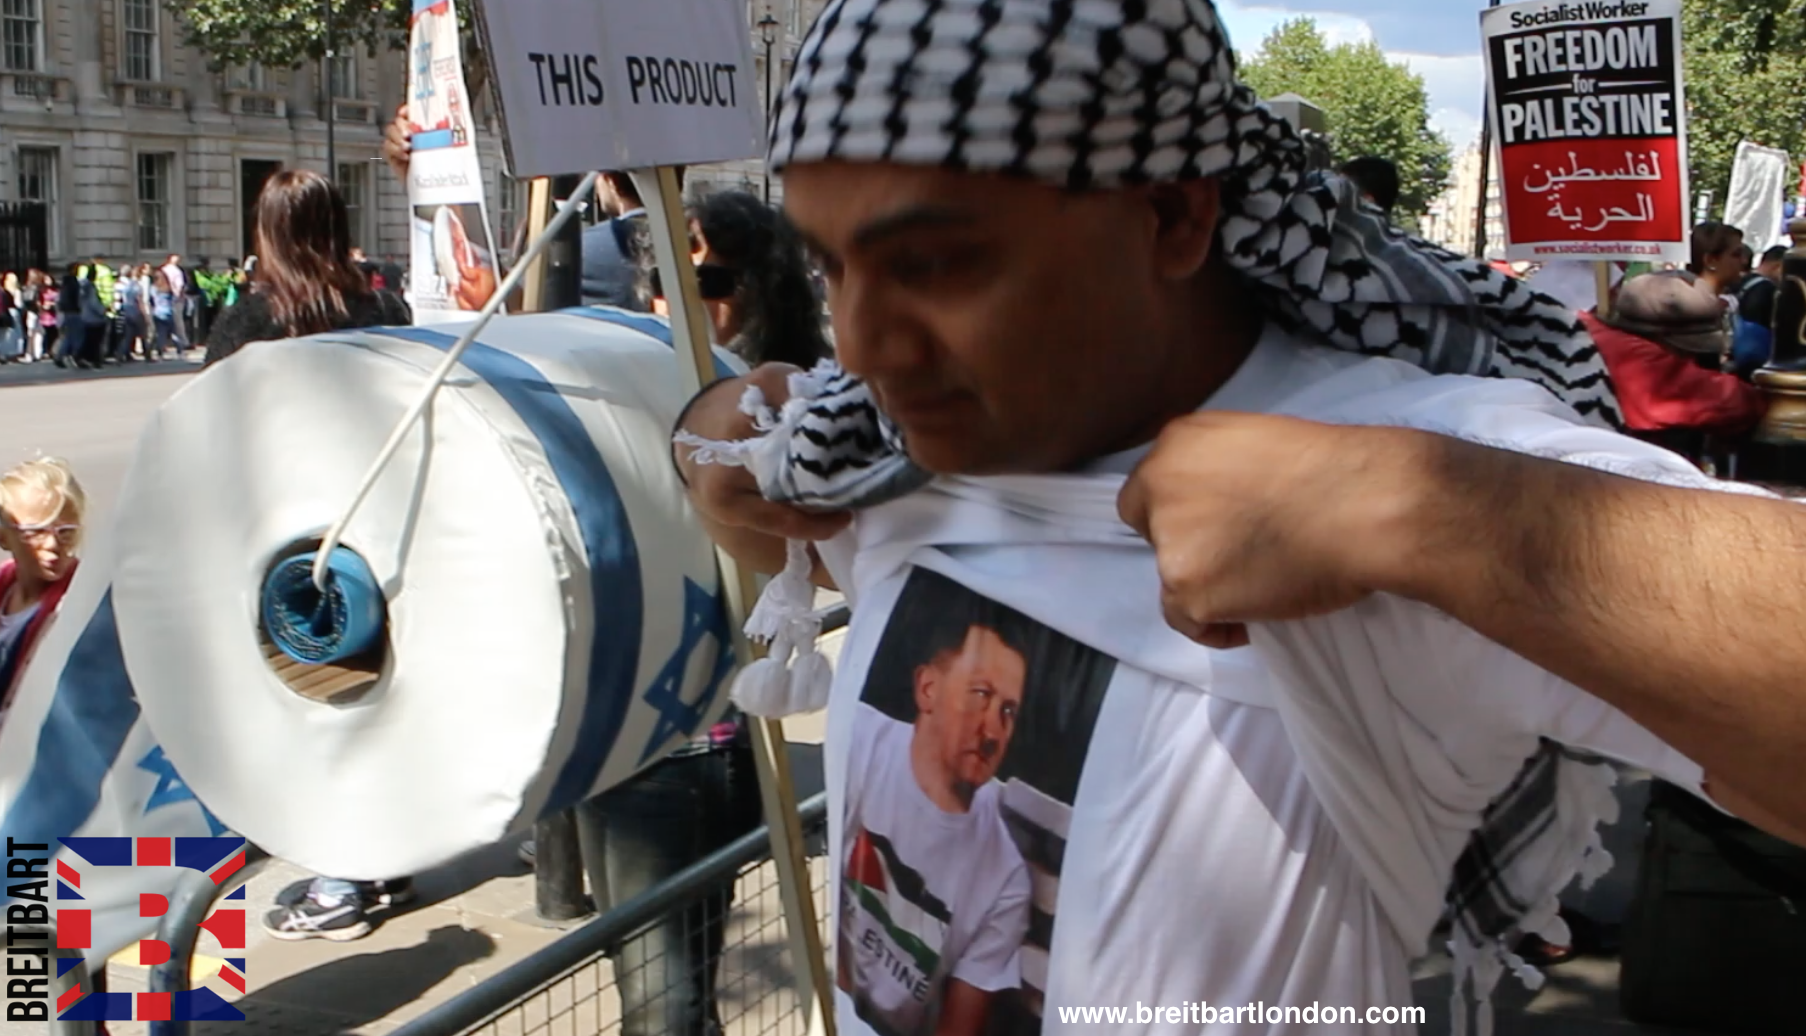 EXCLUSIVE VIDEO: Anti-Israel Protesters Defend Hitler, Police Eject Pro-Israel Man